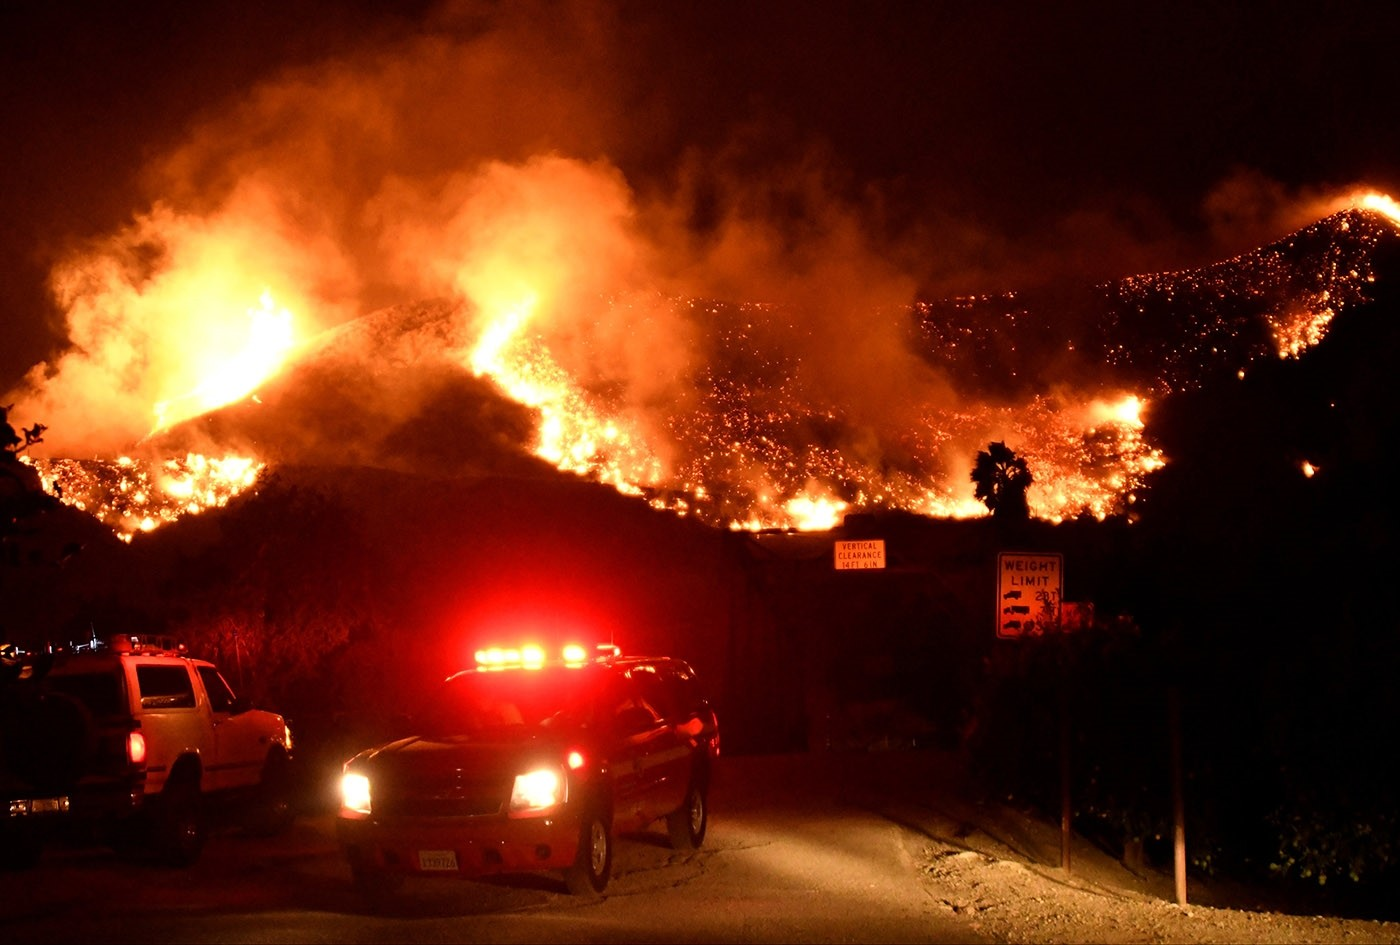 Emergency crews block a roadway as flames spread from a Santa Ana wind-driven brush fire called the Thomas Fire near Ventura, California, December 5, 2017. (Reuters Photo)